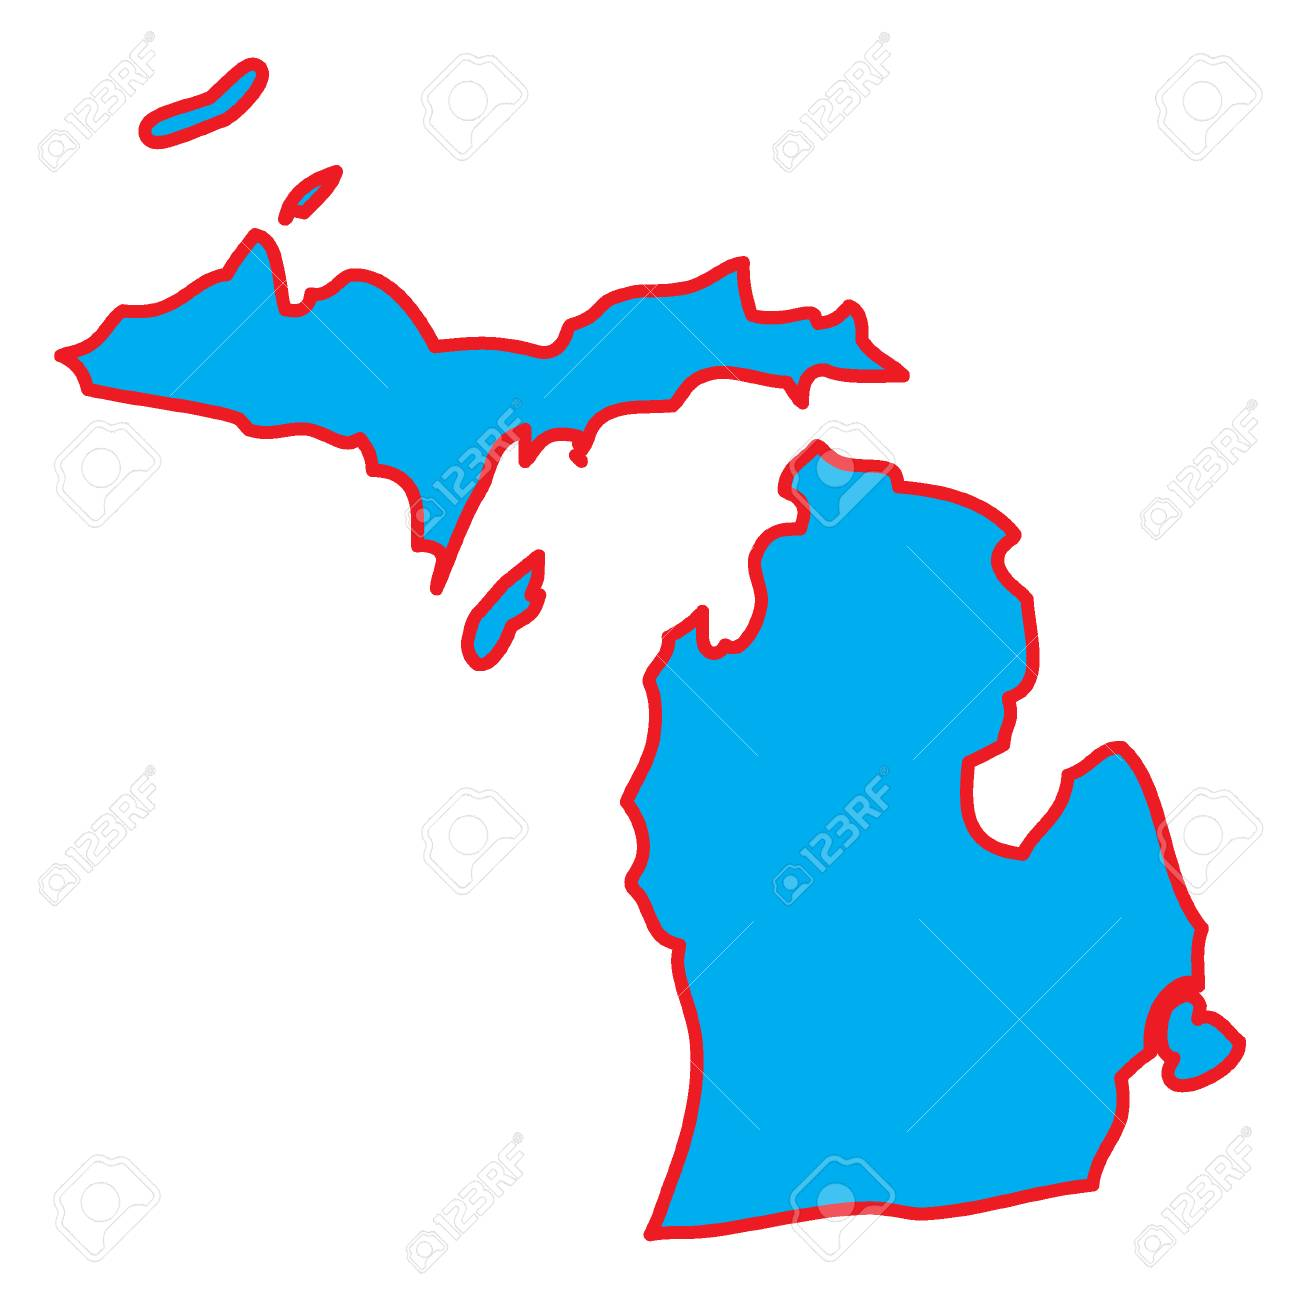 A Map Of The The State Michigan Stock Photo, Picture And Royalty ...